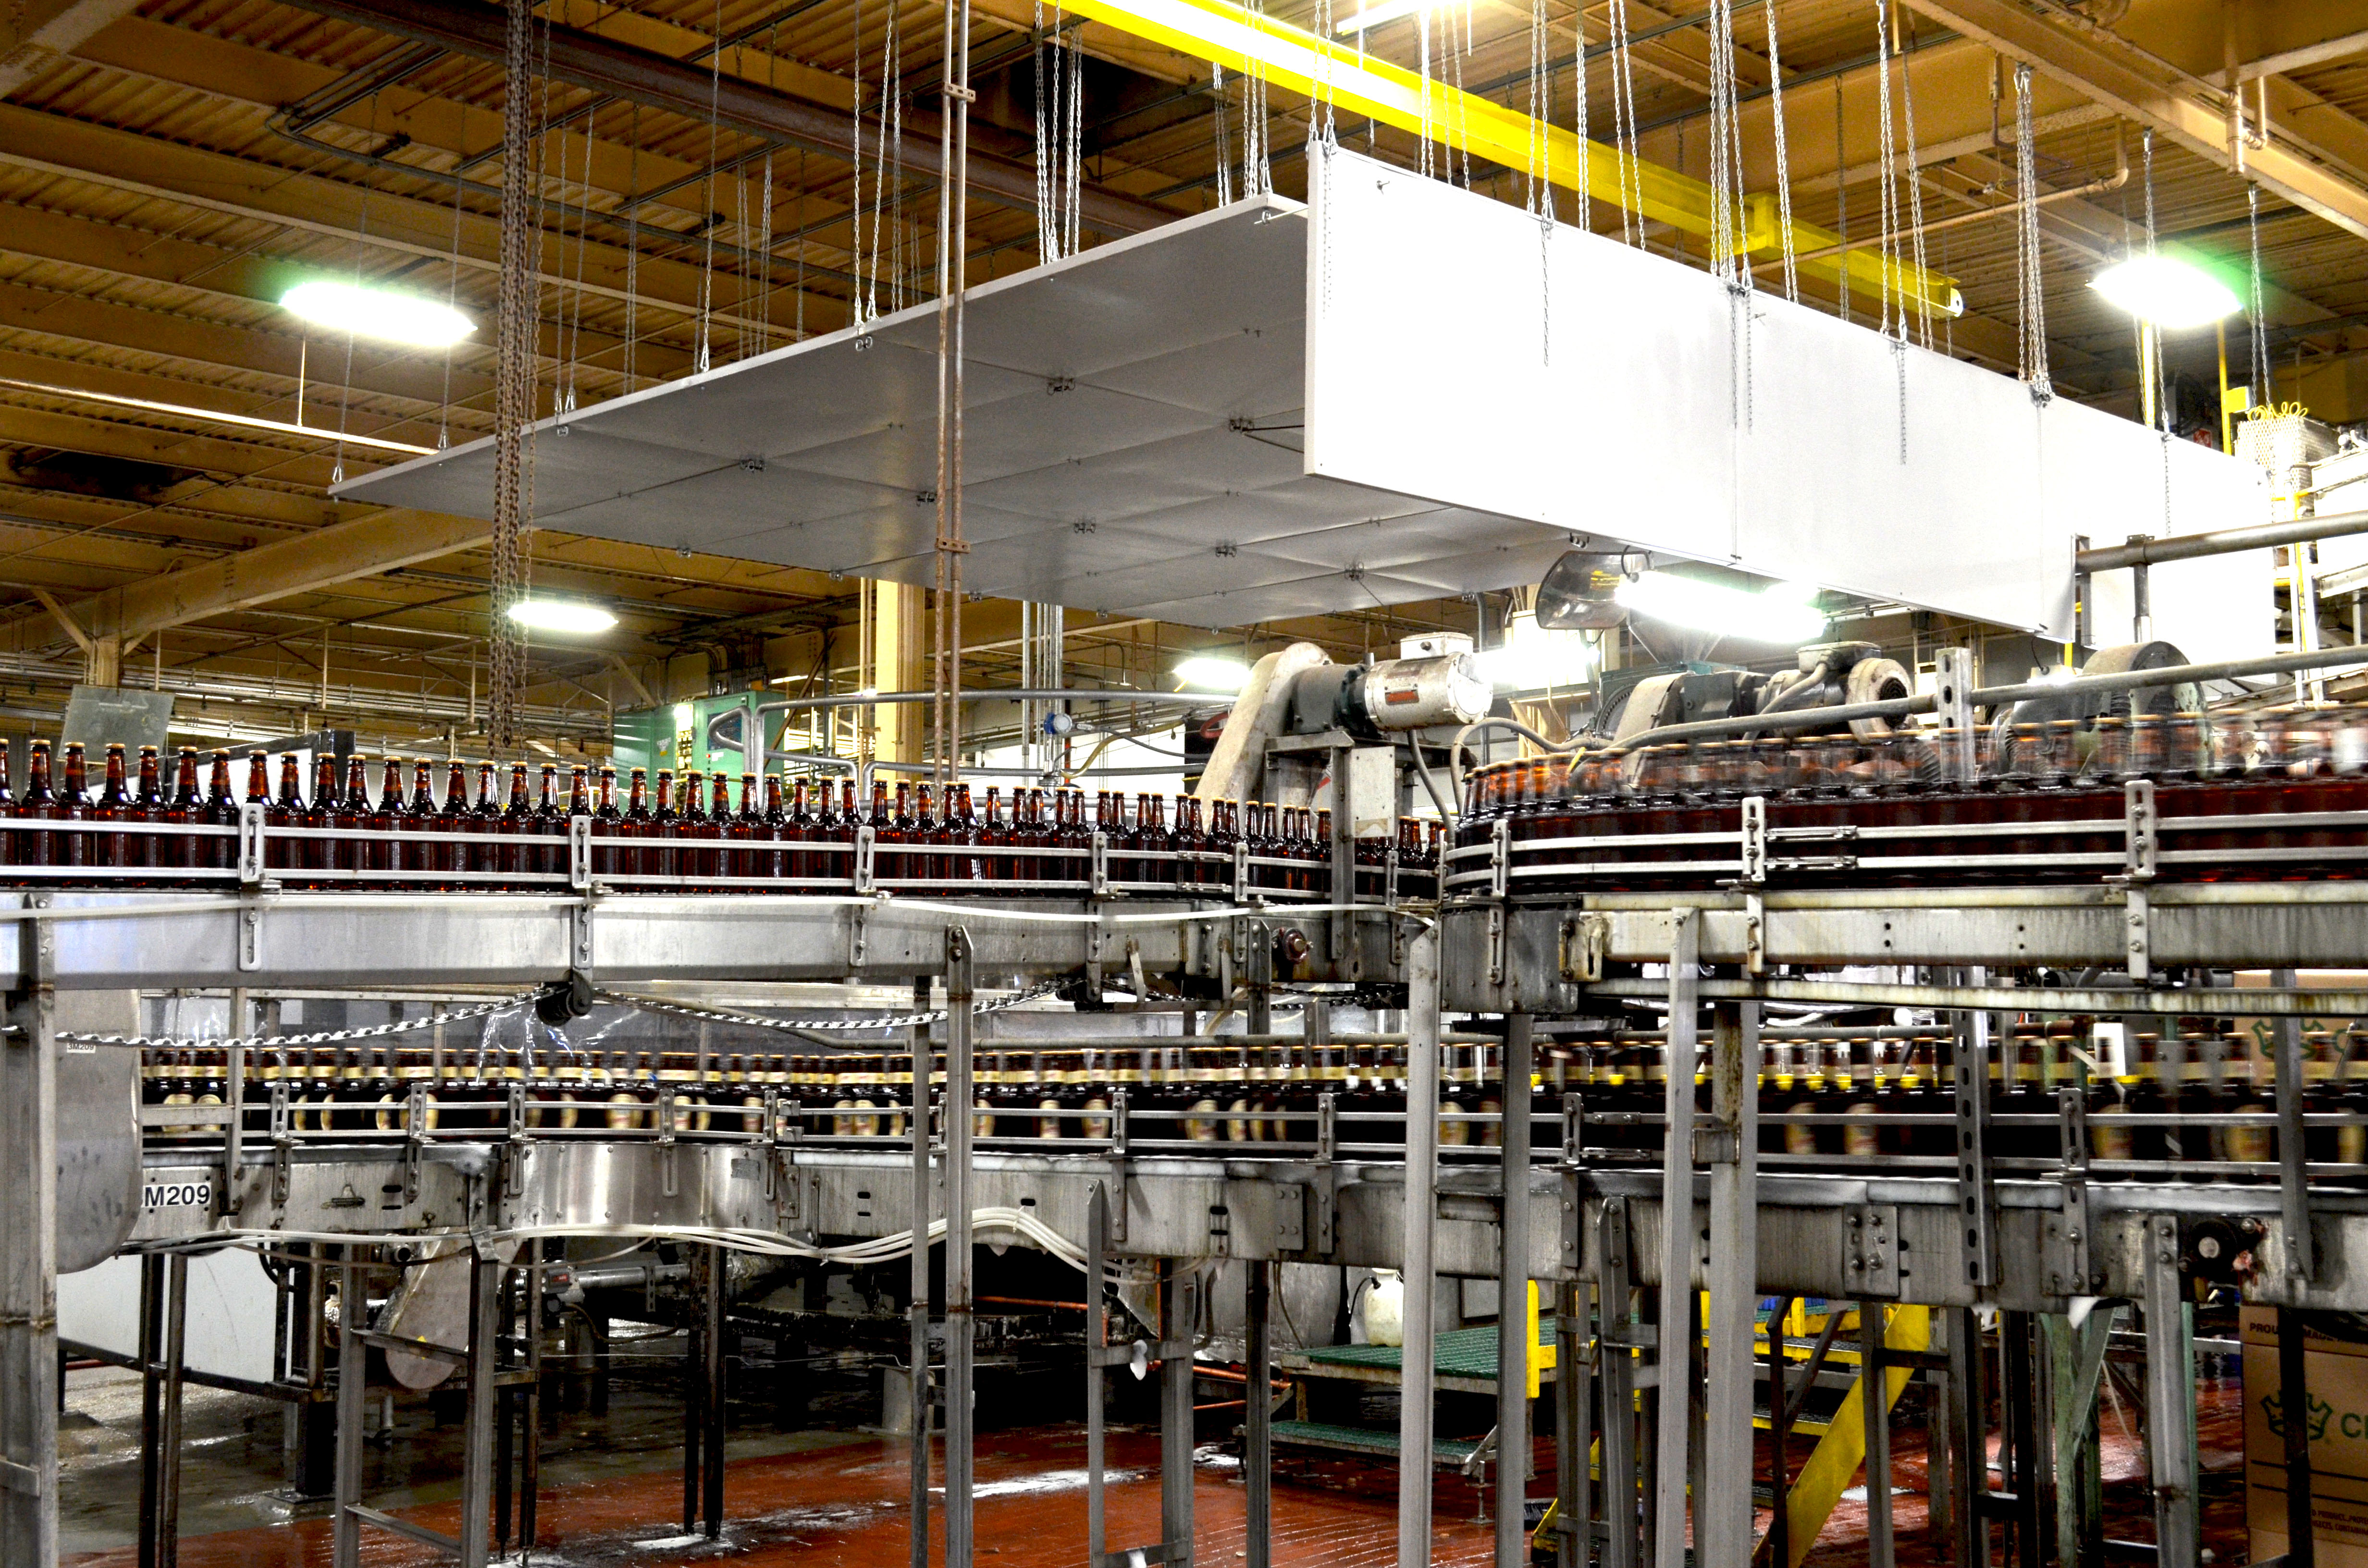 quiet cloud absorbs noise industrial bottling facility 3